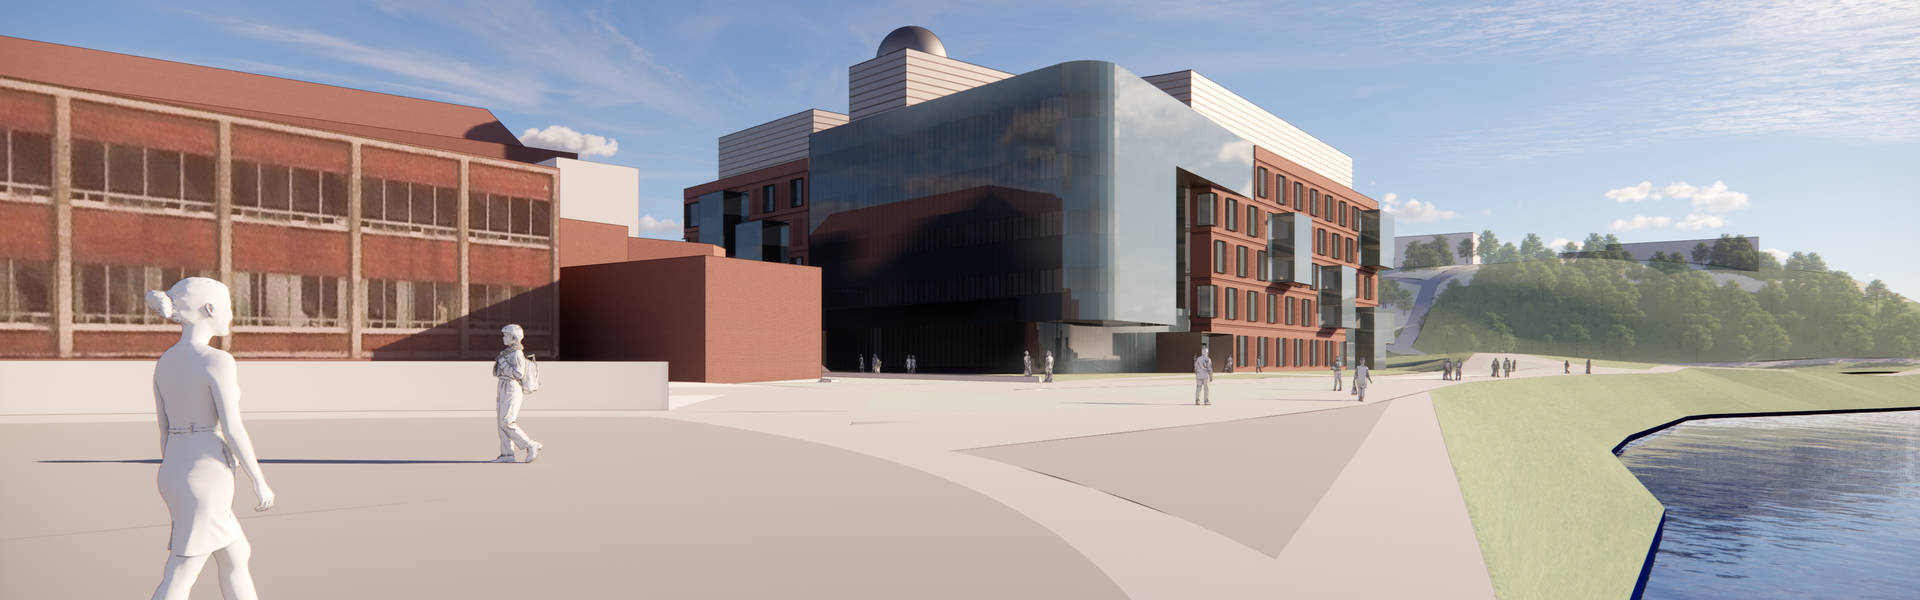 Health and Health Sciences Building Rendering 2